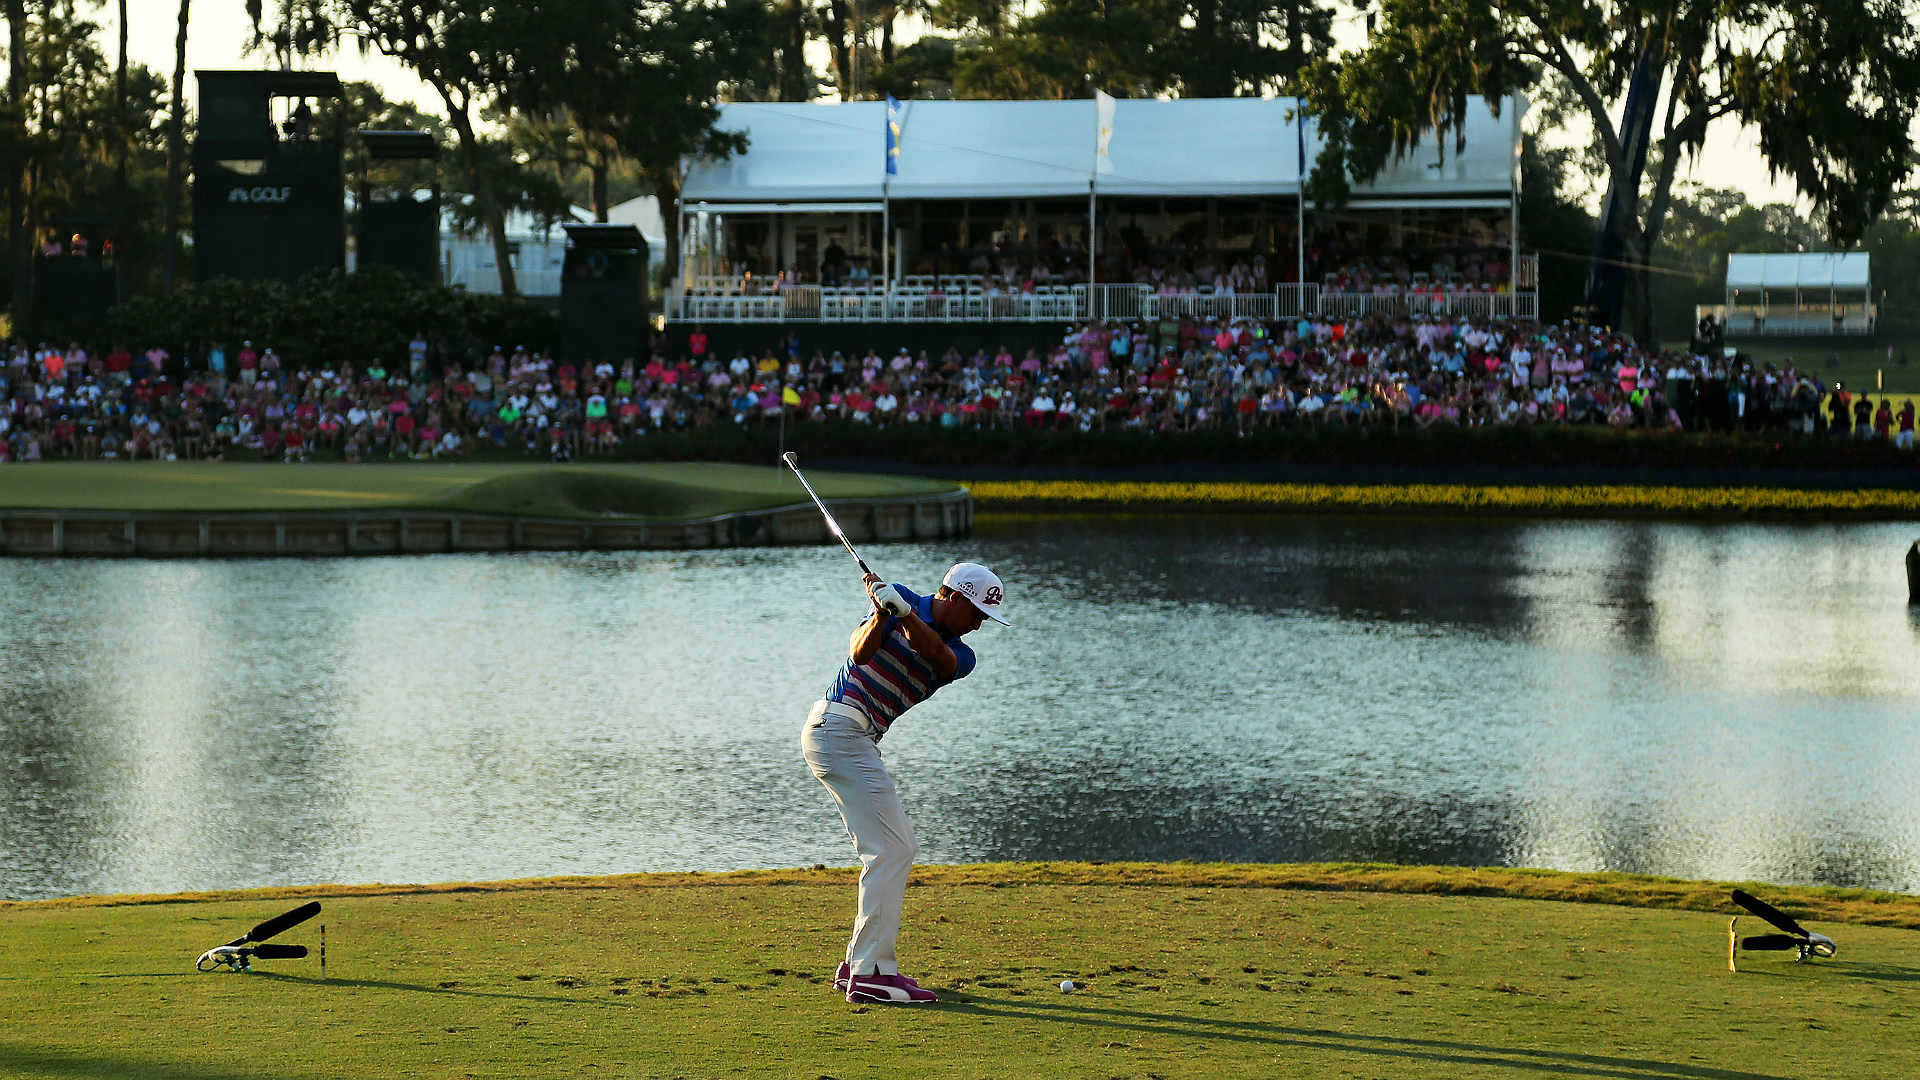 TPC Sawgrass challenging for golf's best